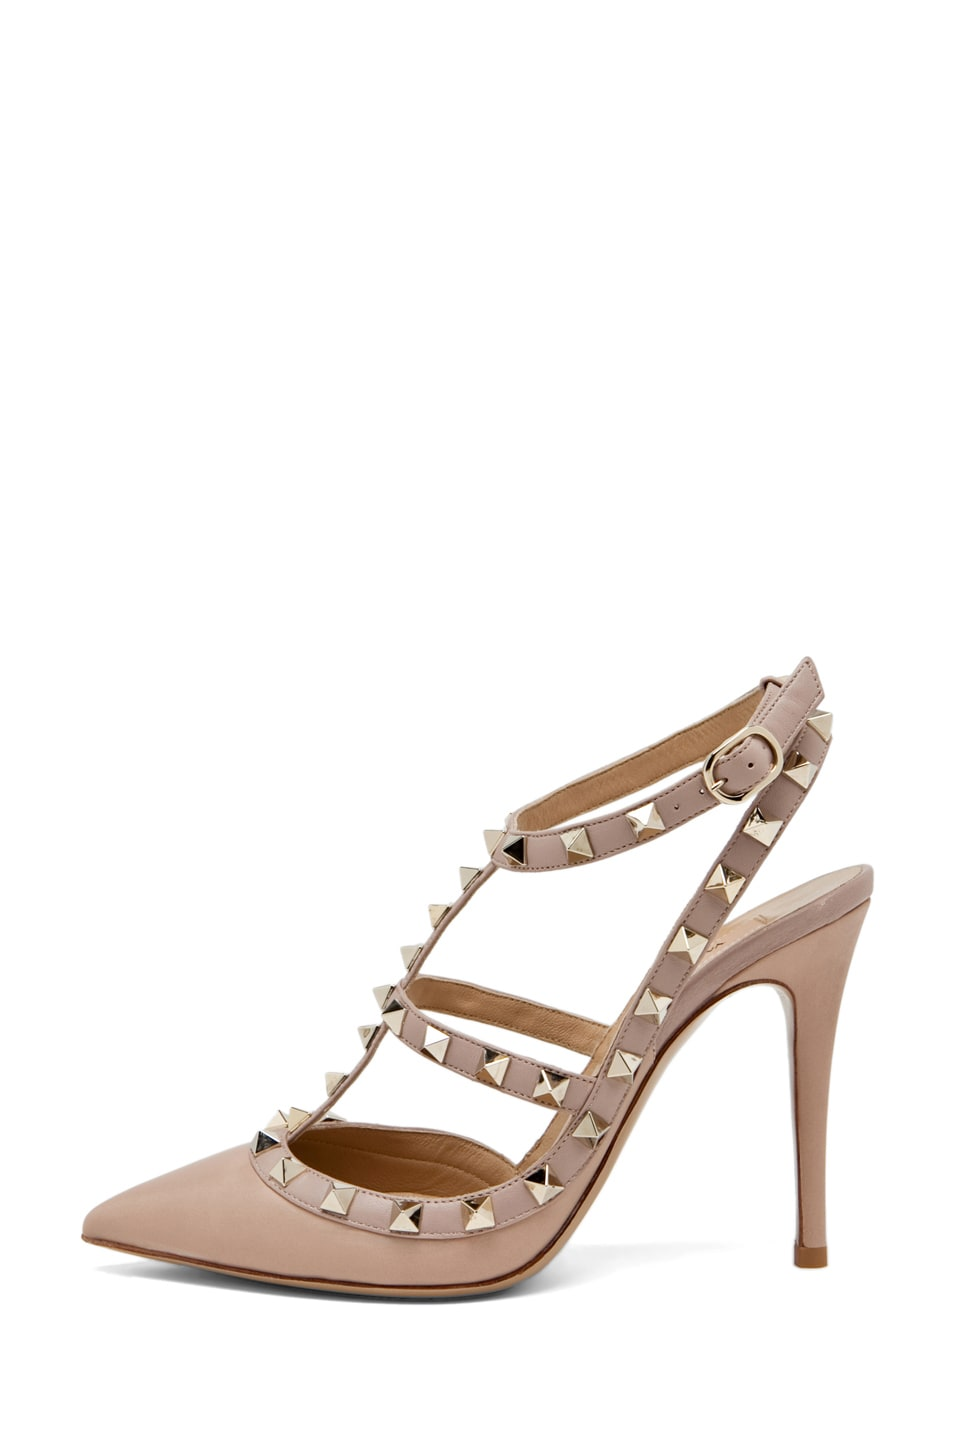 Image 1 of Valentino Rockstud Leather Slingbacks T.100 in Powder